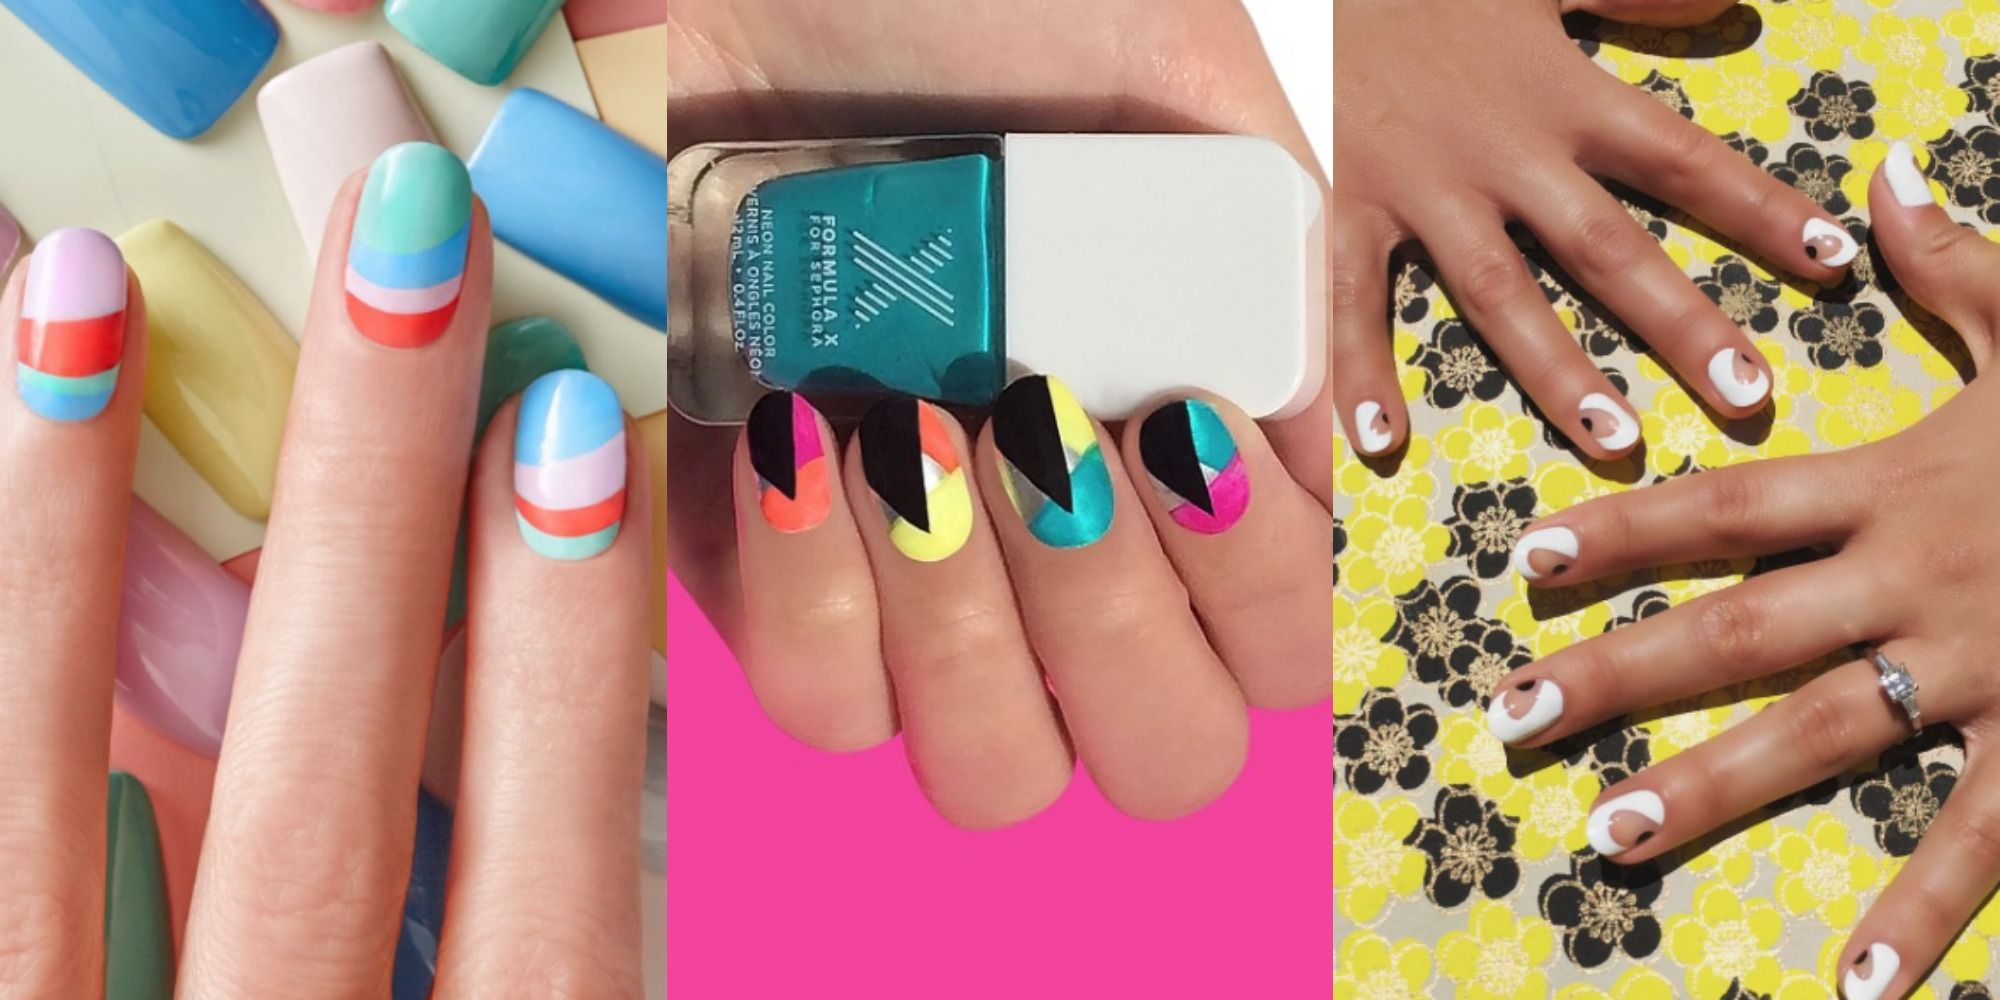 Easy Nail Art Designs - Easy Ideas for Nail Art